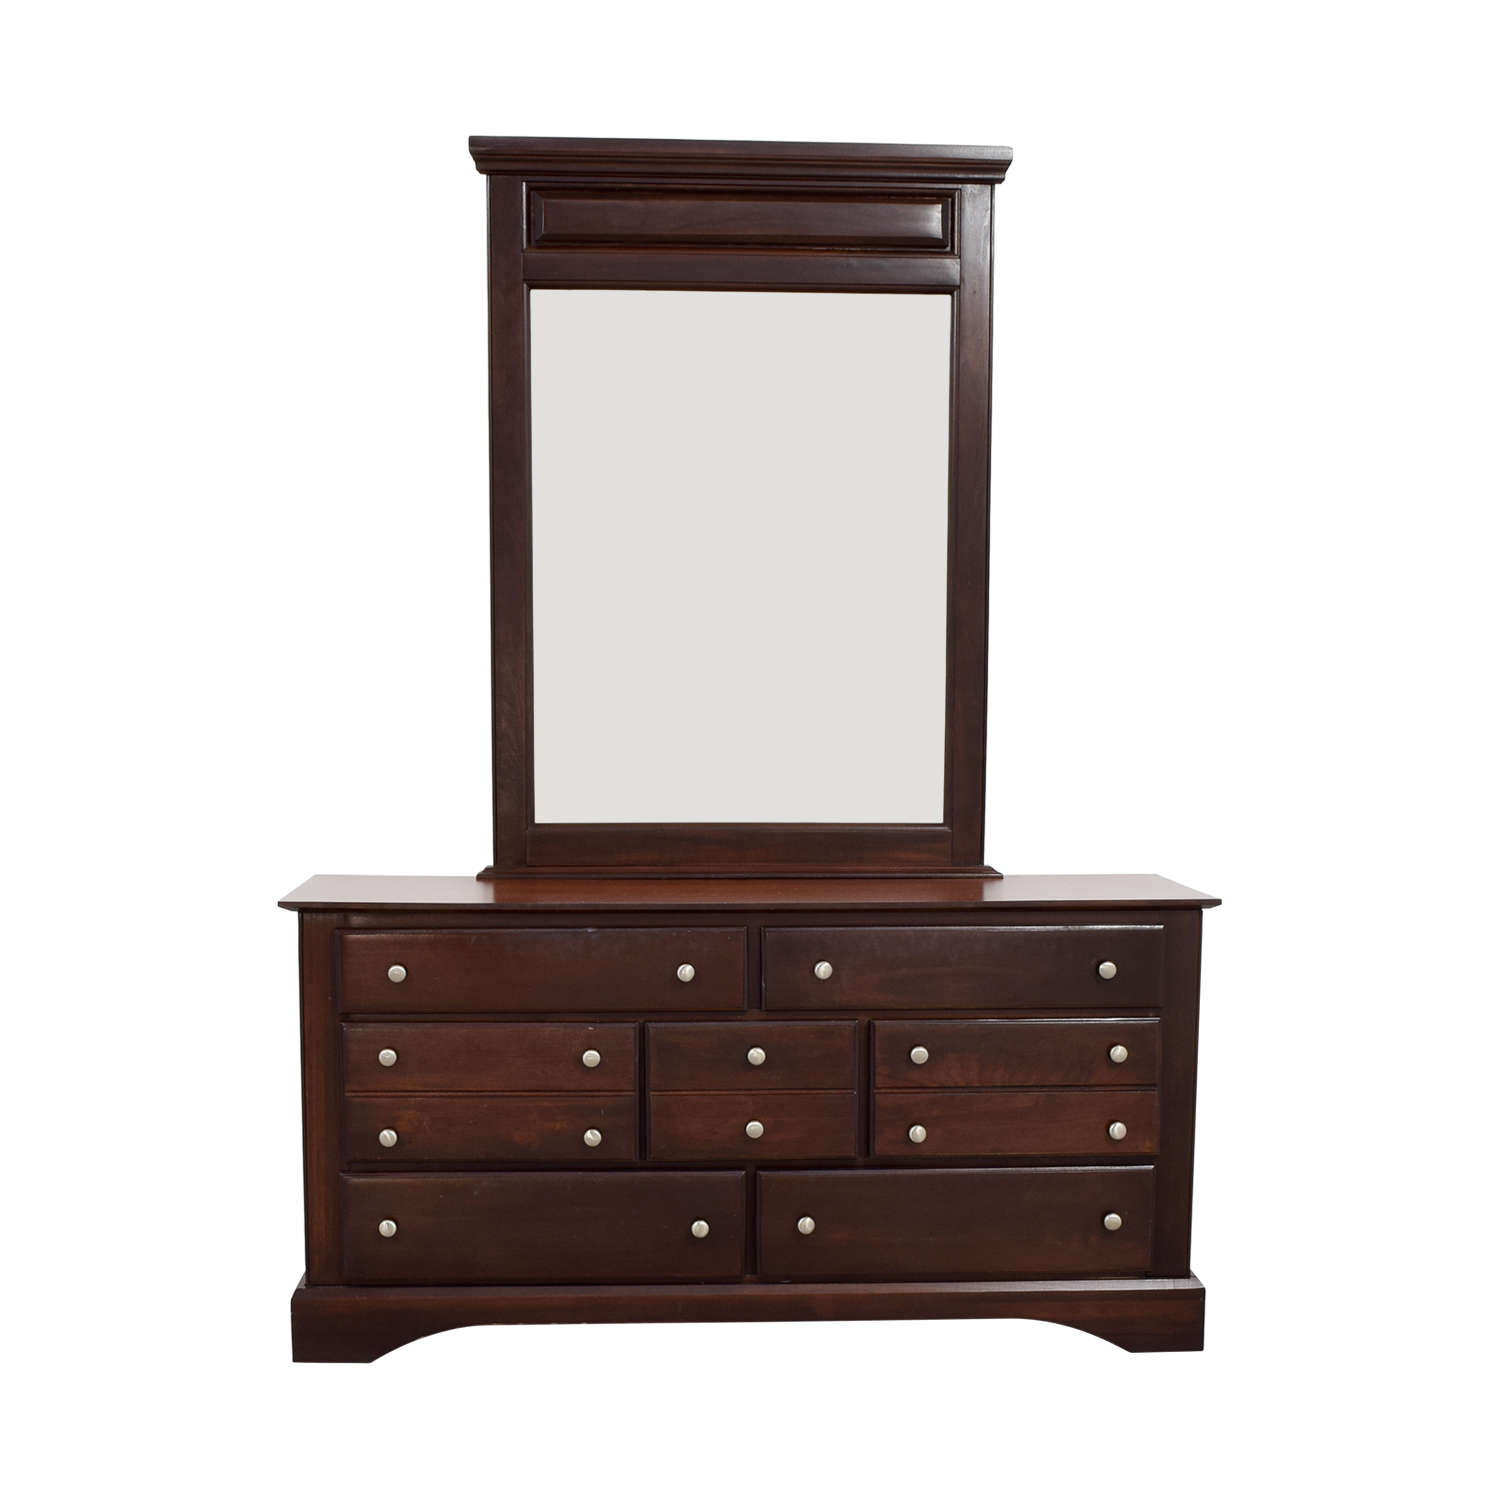 buy Seven-Drawer Wood Dresser with Mirror online